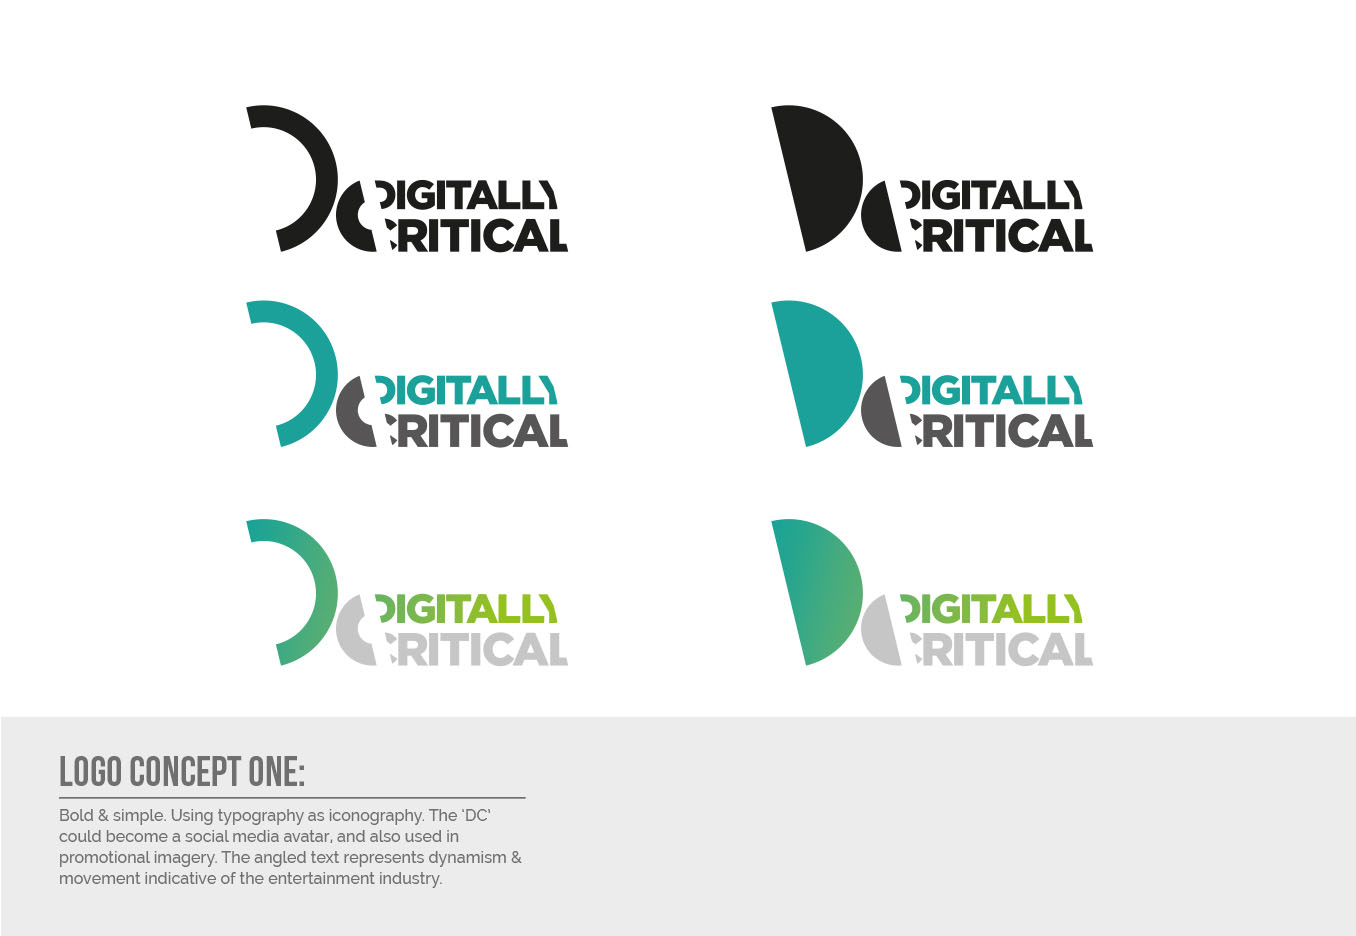 Digitally Critical Logo Design - Concept One